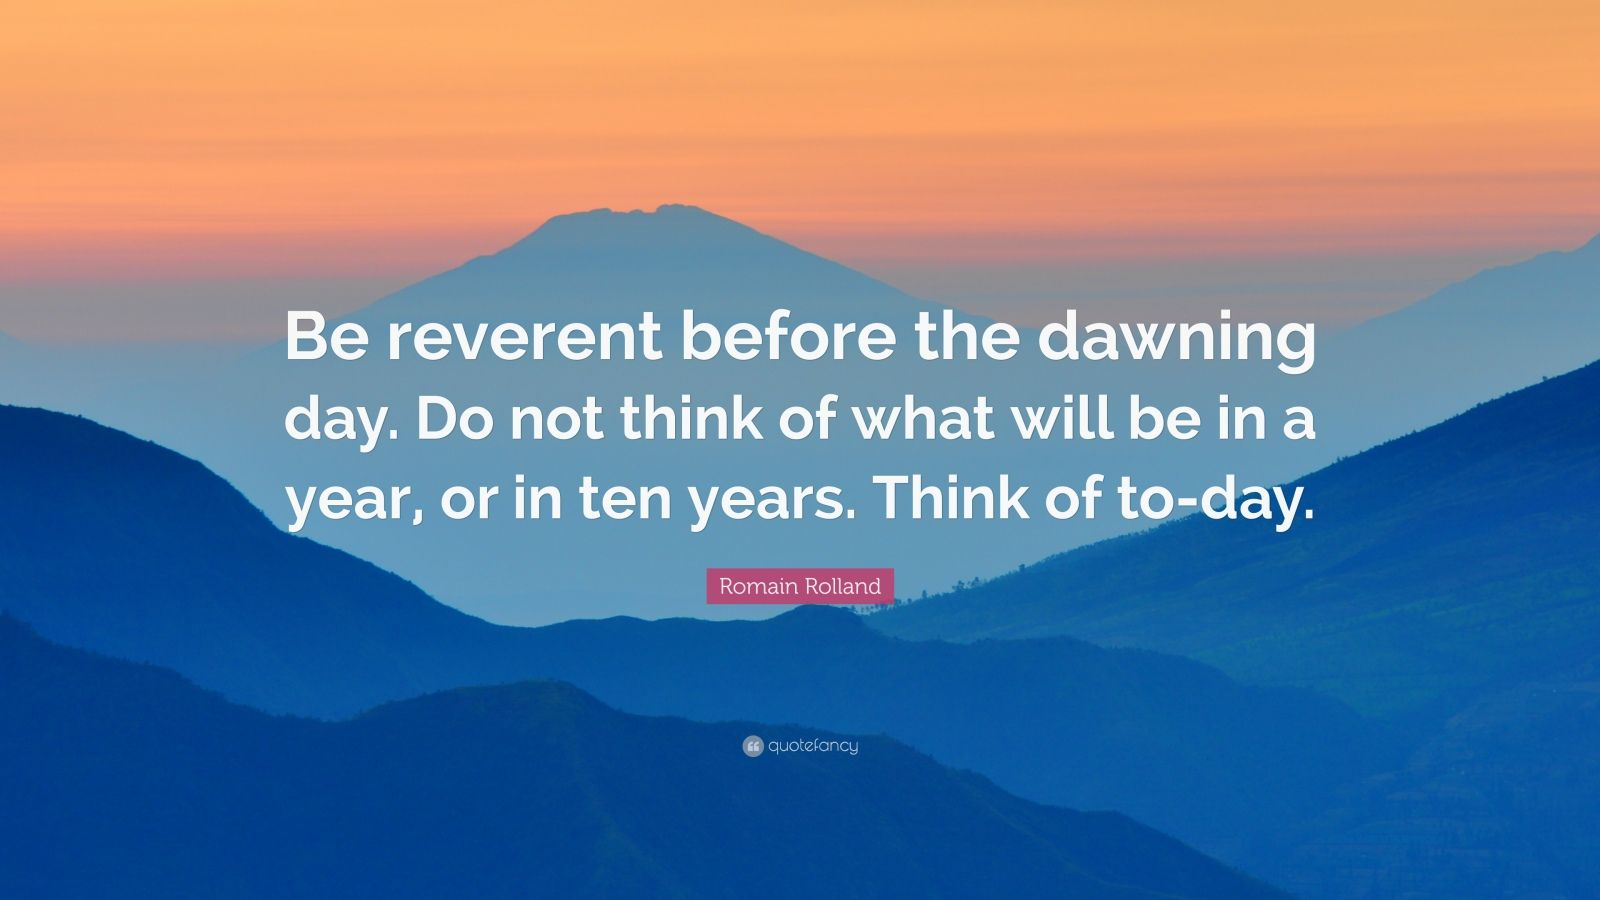 """Romain Rolland Quote: """"Be reverent before the dawning day. Do not think of what will be in a year, or in ten years. Think of to-day."""""""